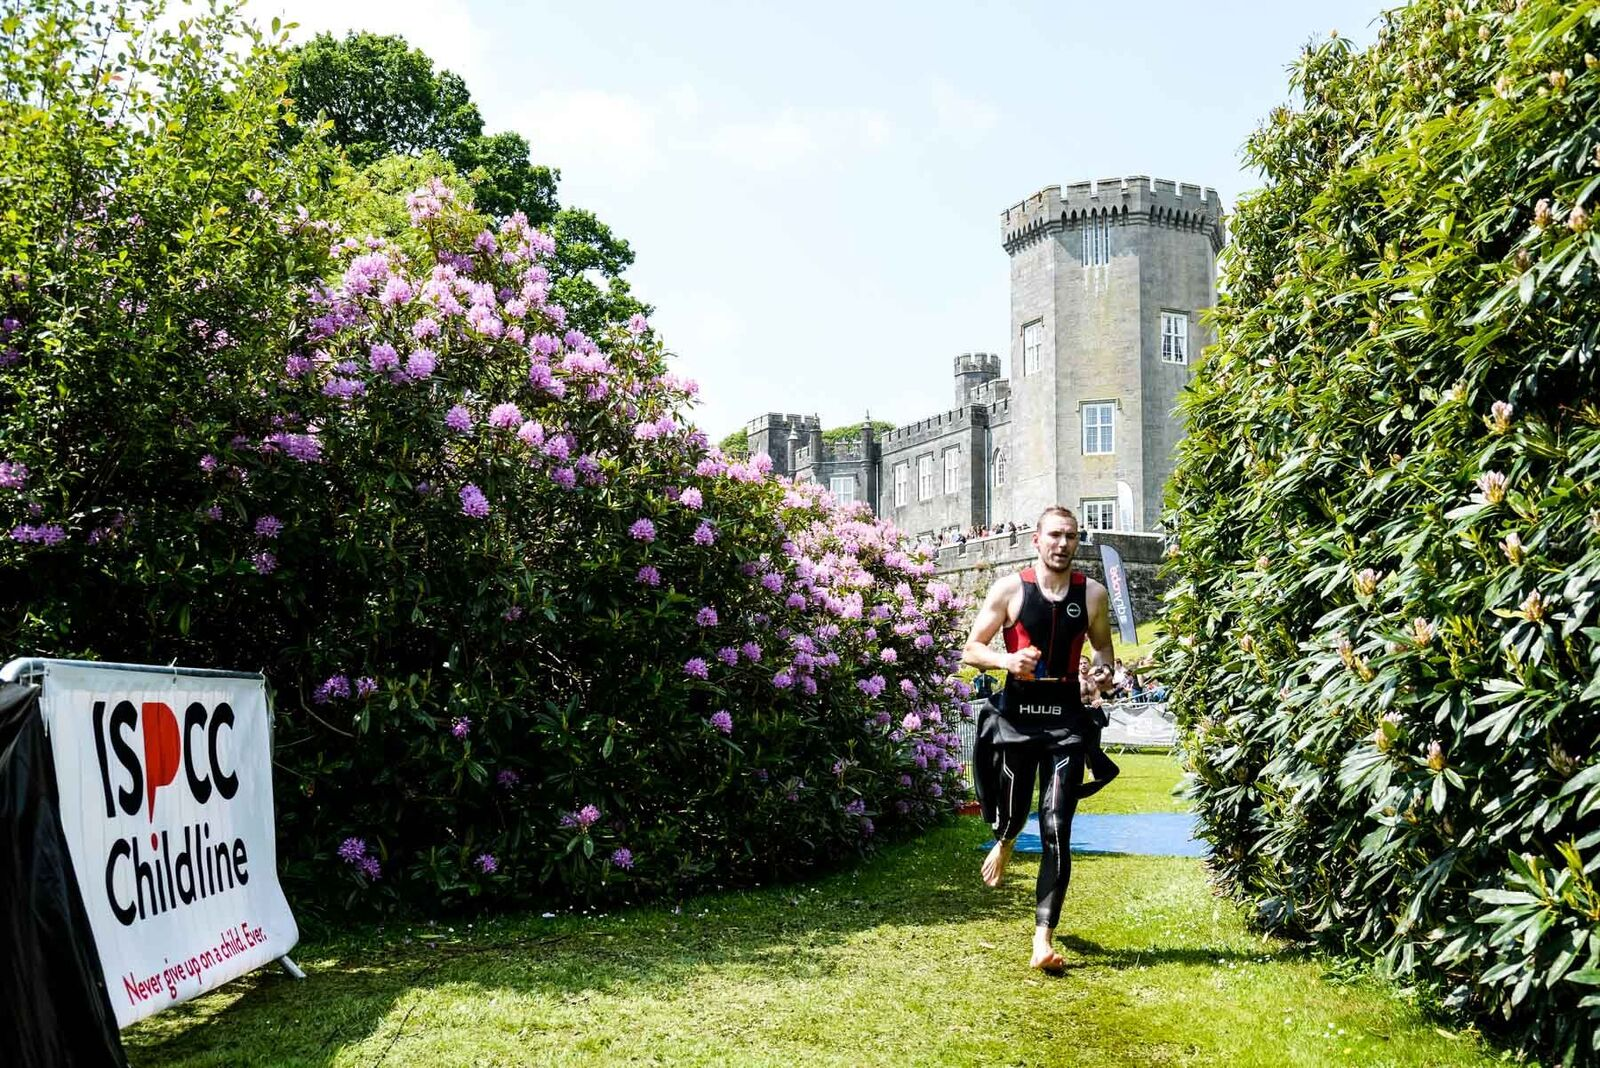 lough cutra castle picture runner 2016